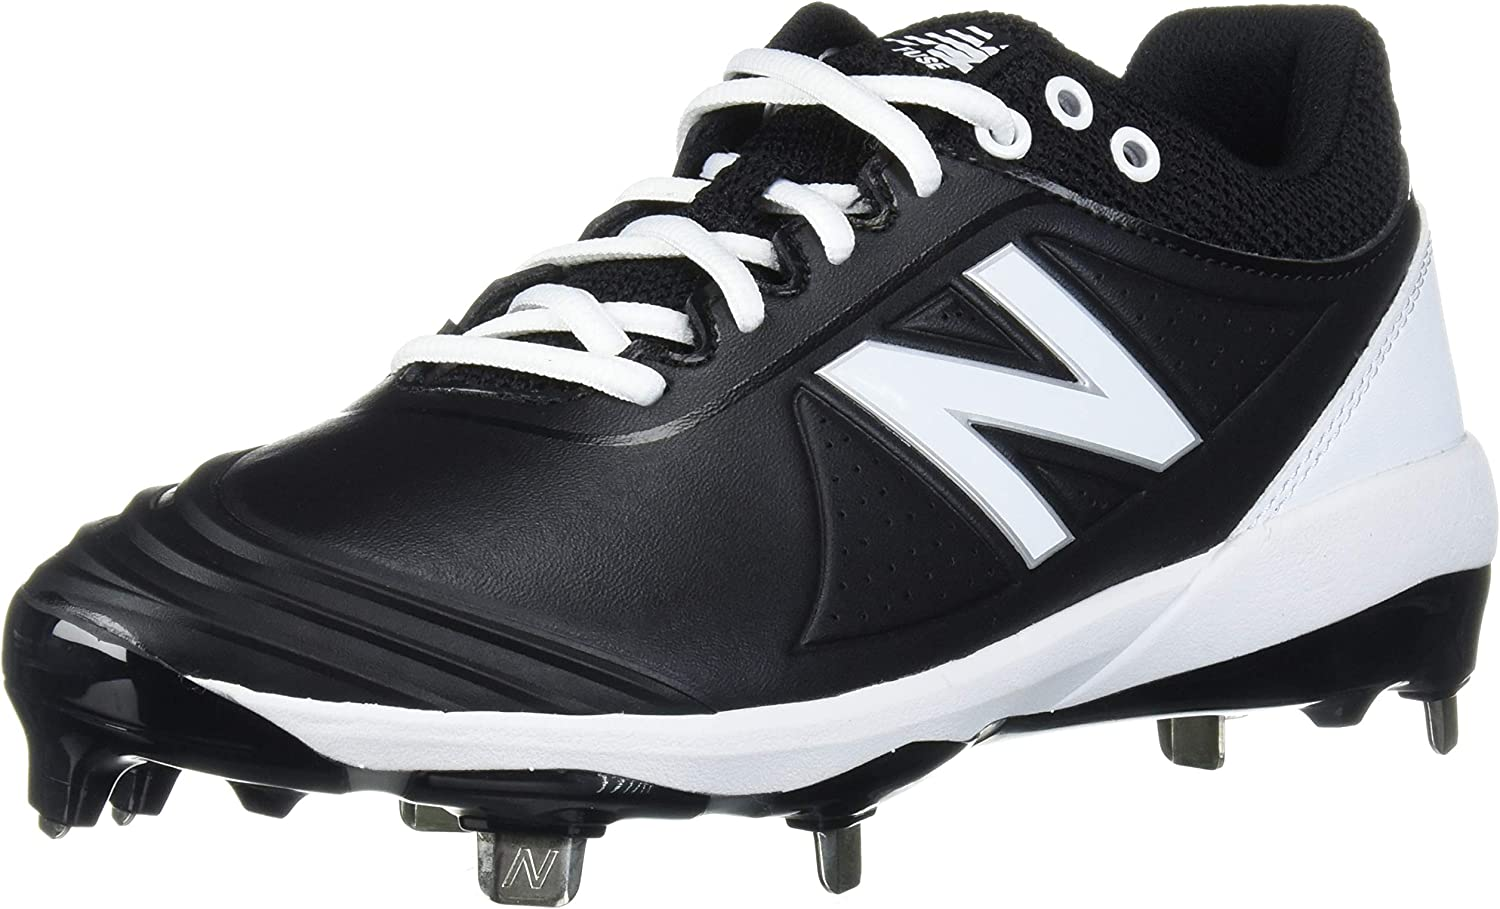 New Branded goods Balance Sale special price Women's Fuse V2 Shoe Metal Softball